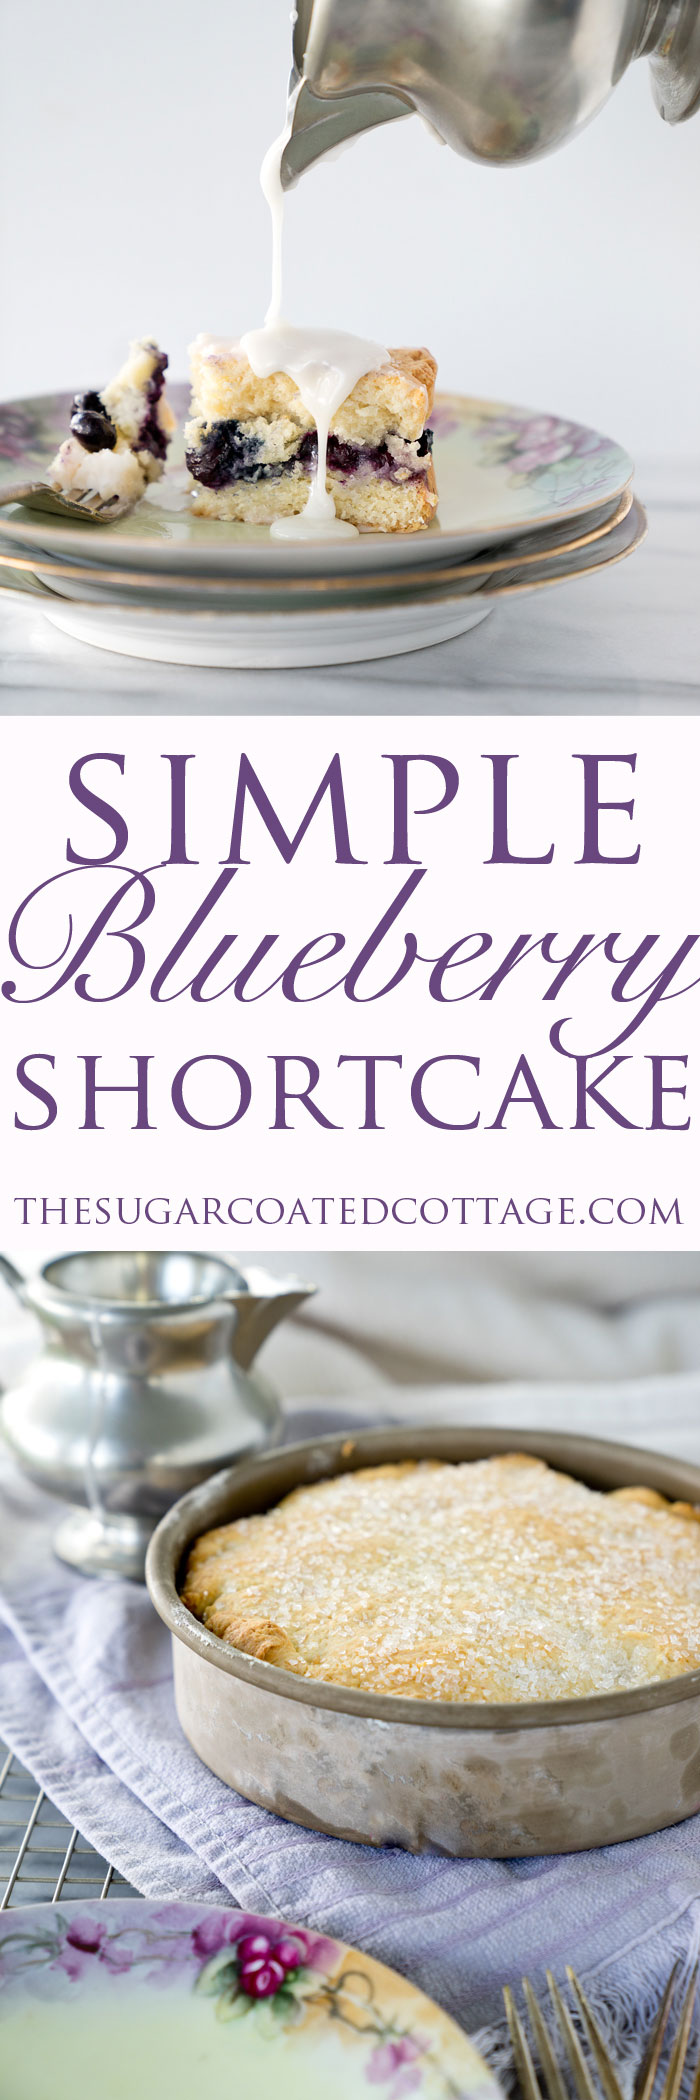 Simply Delicious Blueberry Shortcake! Loving this easy classic shortcake recipe. Summer is all about blueberries so indulge in this simple, delicious dessert perfect for any occasion. | thesugarcoatedcottage.com